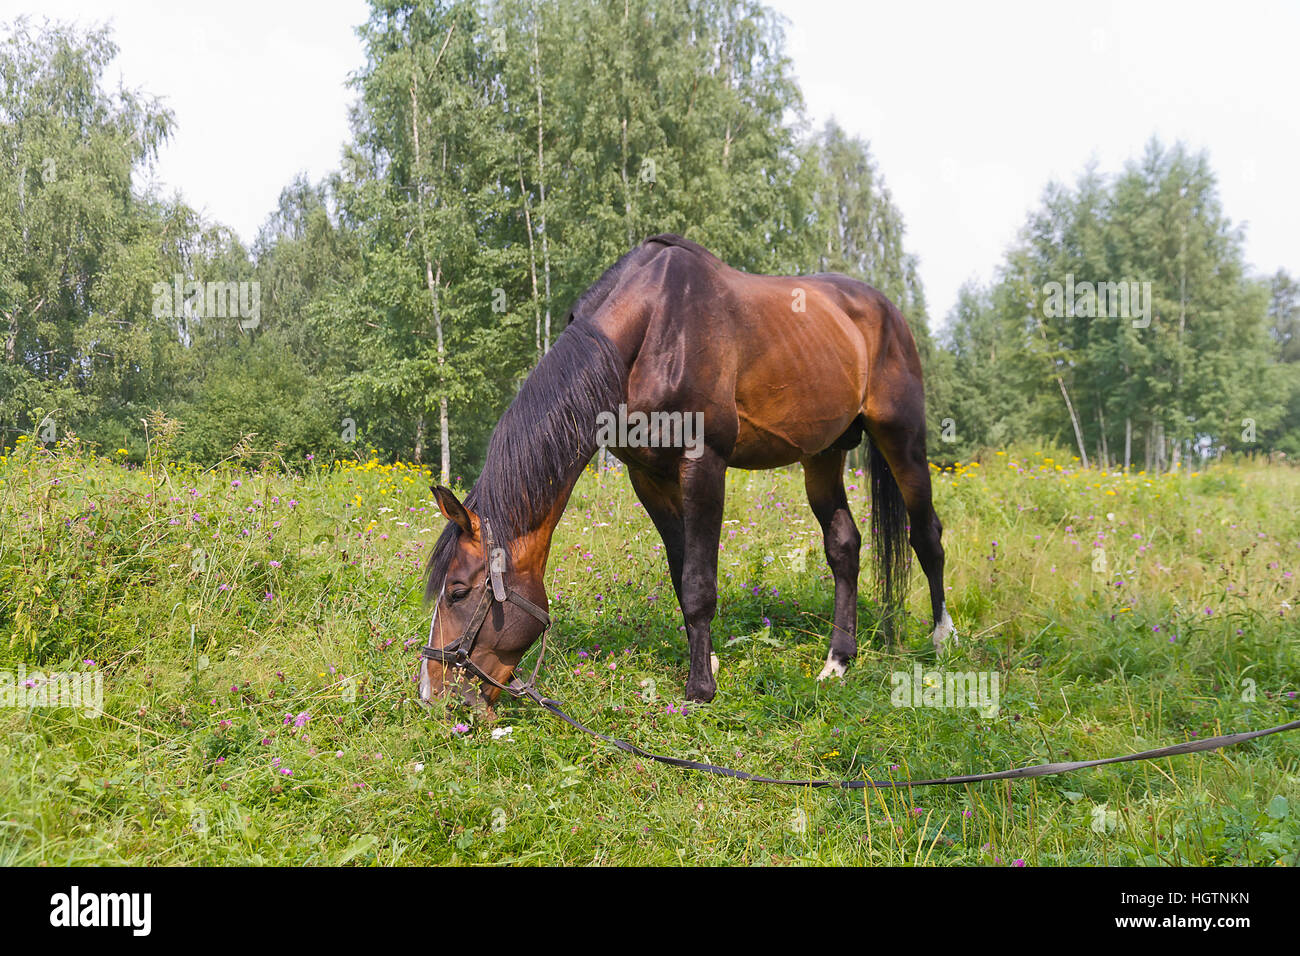 Sorrel horse grazing on a meadow near the forest - Stock Image